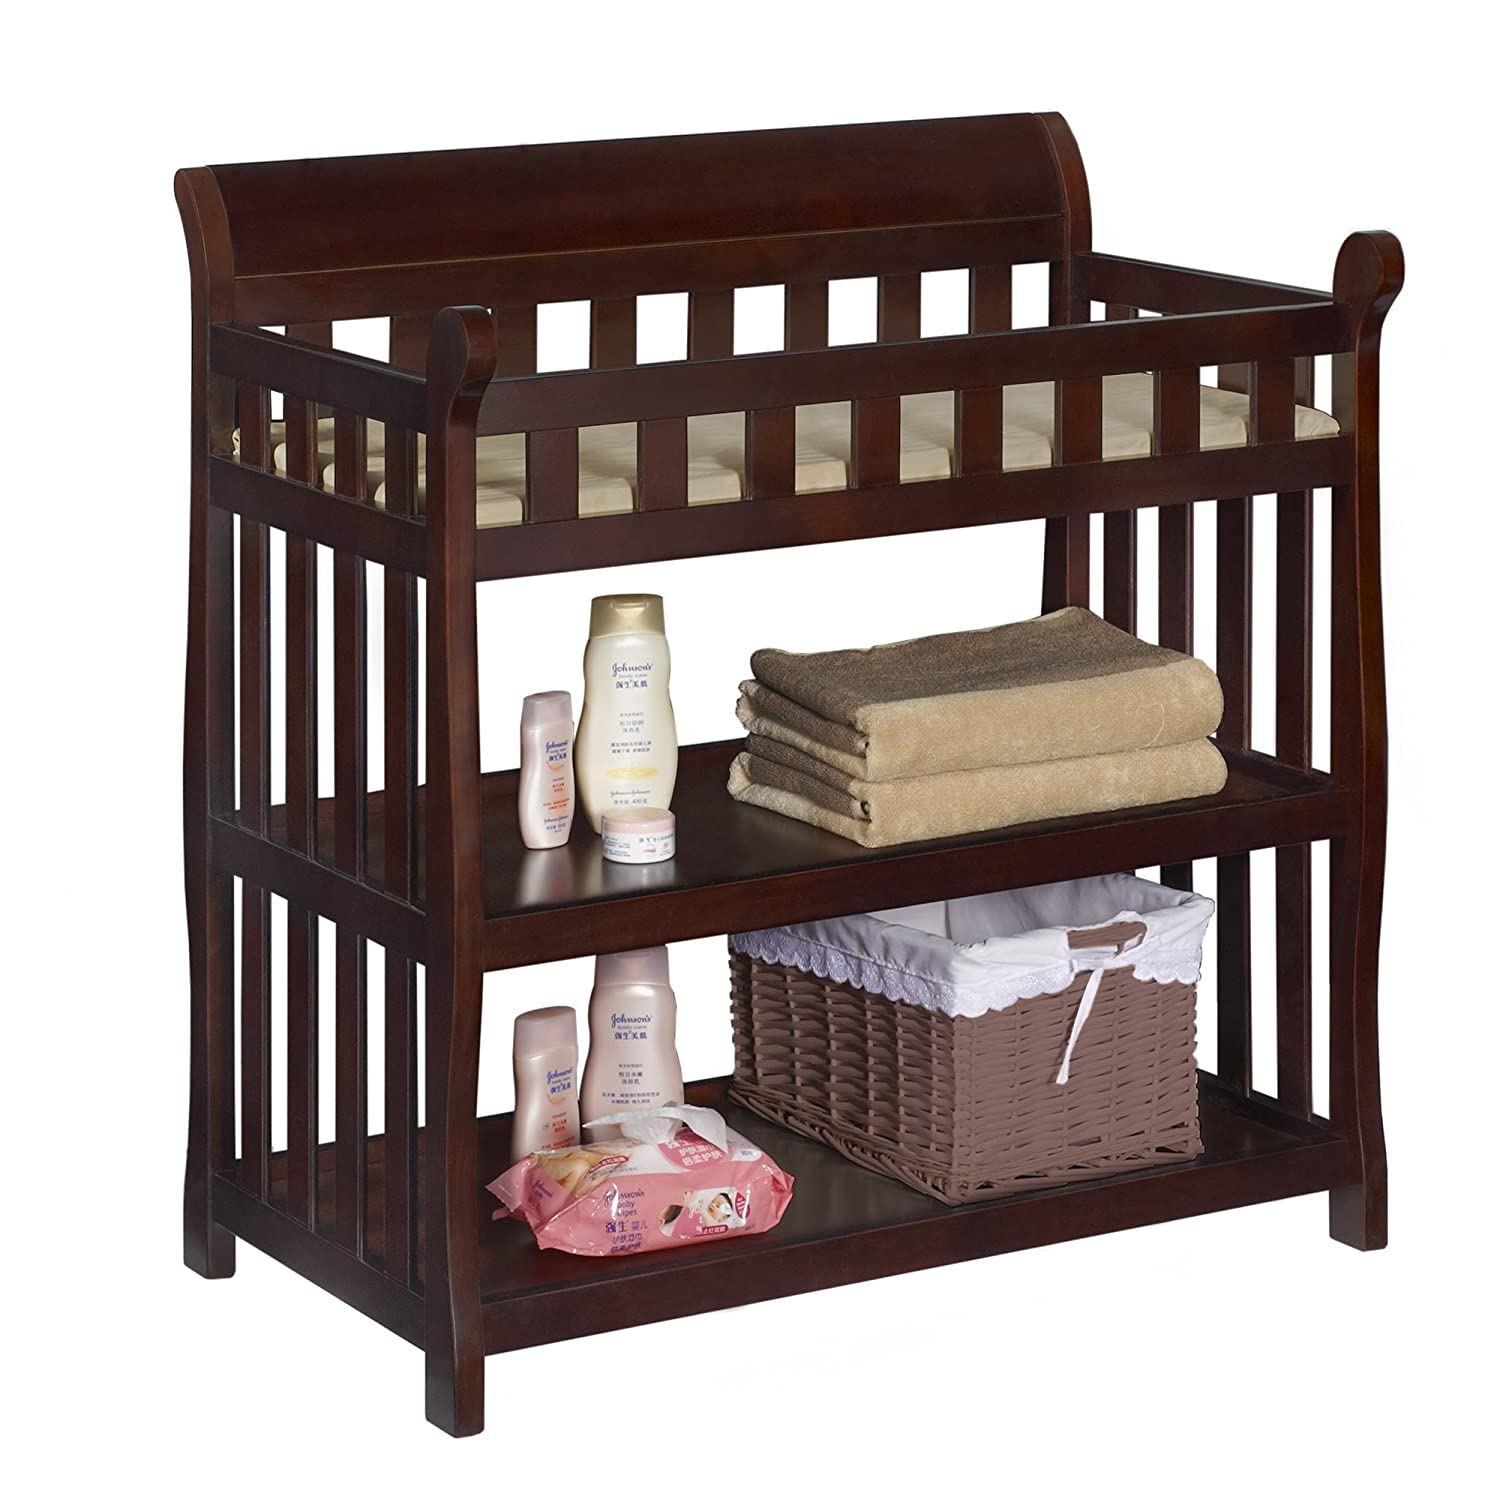 Exceptionnel Amazon.com : Delta Children Eclipse Changing Table, Vintage Espresso : Baby